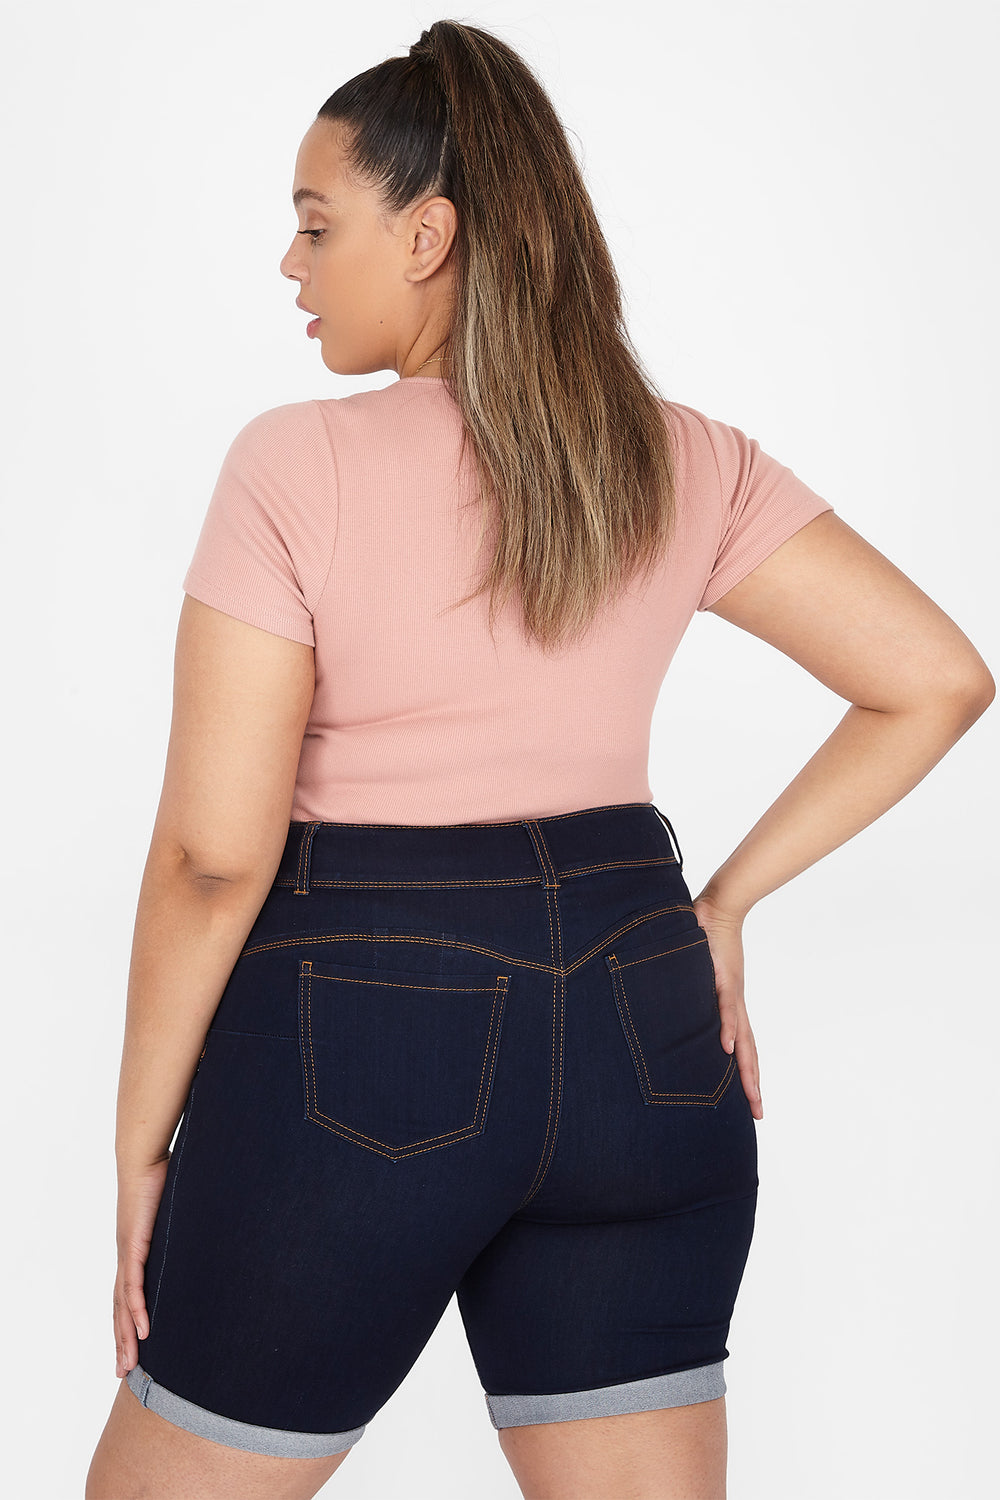 Plus Size Butt, I Love You 2-Tier High-Rise Rolled Cuff Bermuda Short Dark Blue